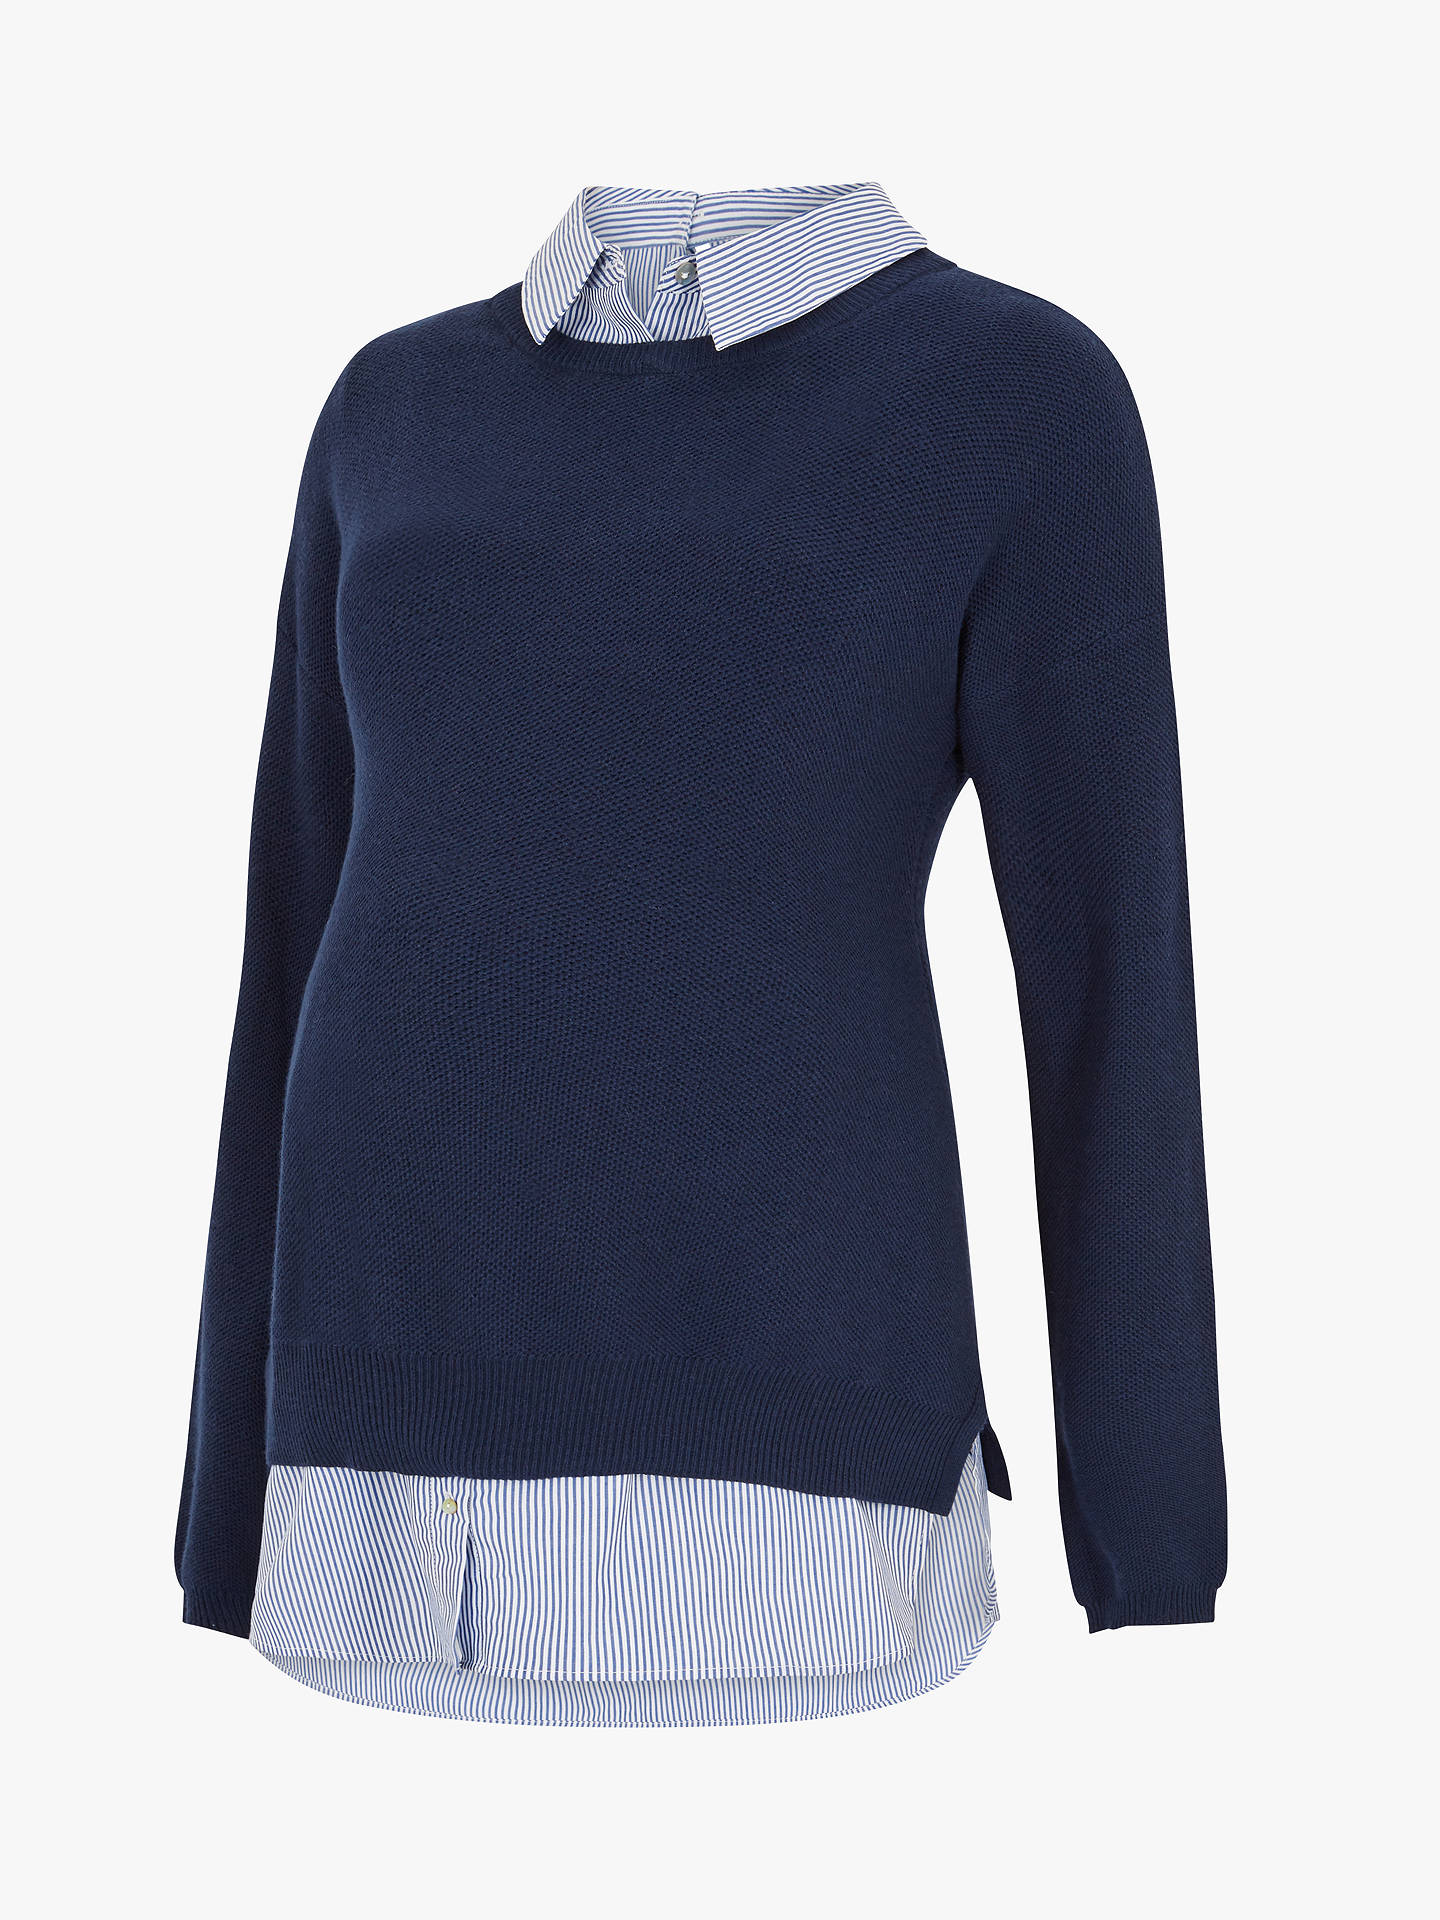 BuySéraphine Emily Stripe Maternity and Nursing Jumper, Navy, S Online at johnlewis.com